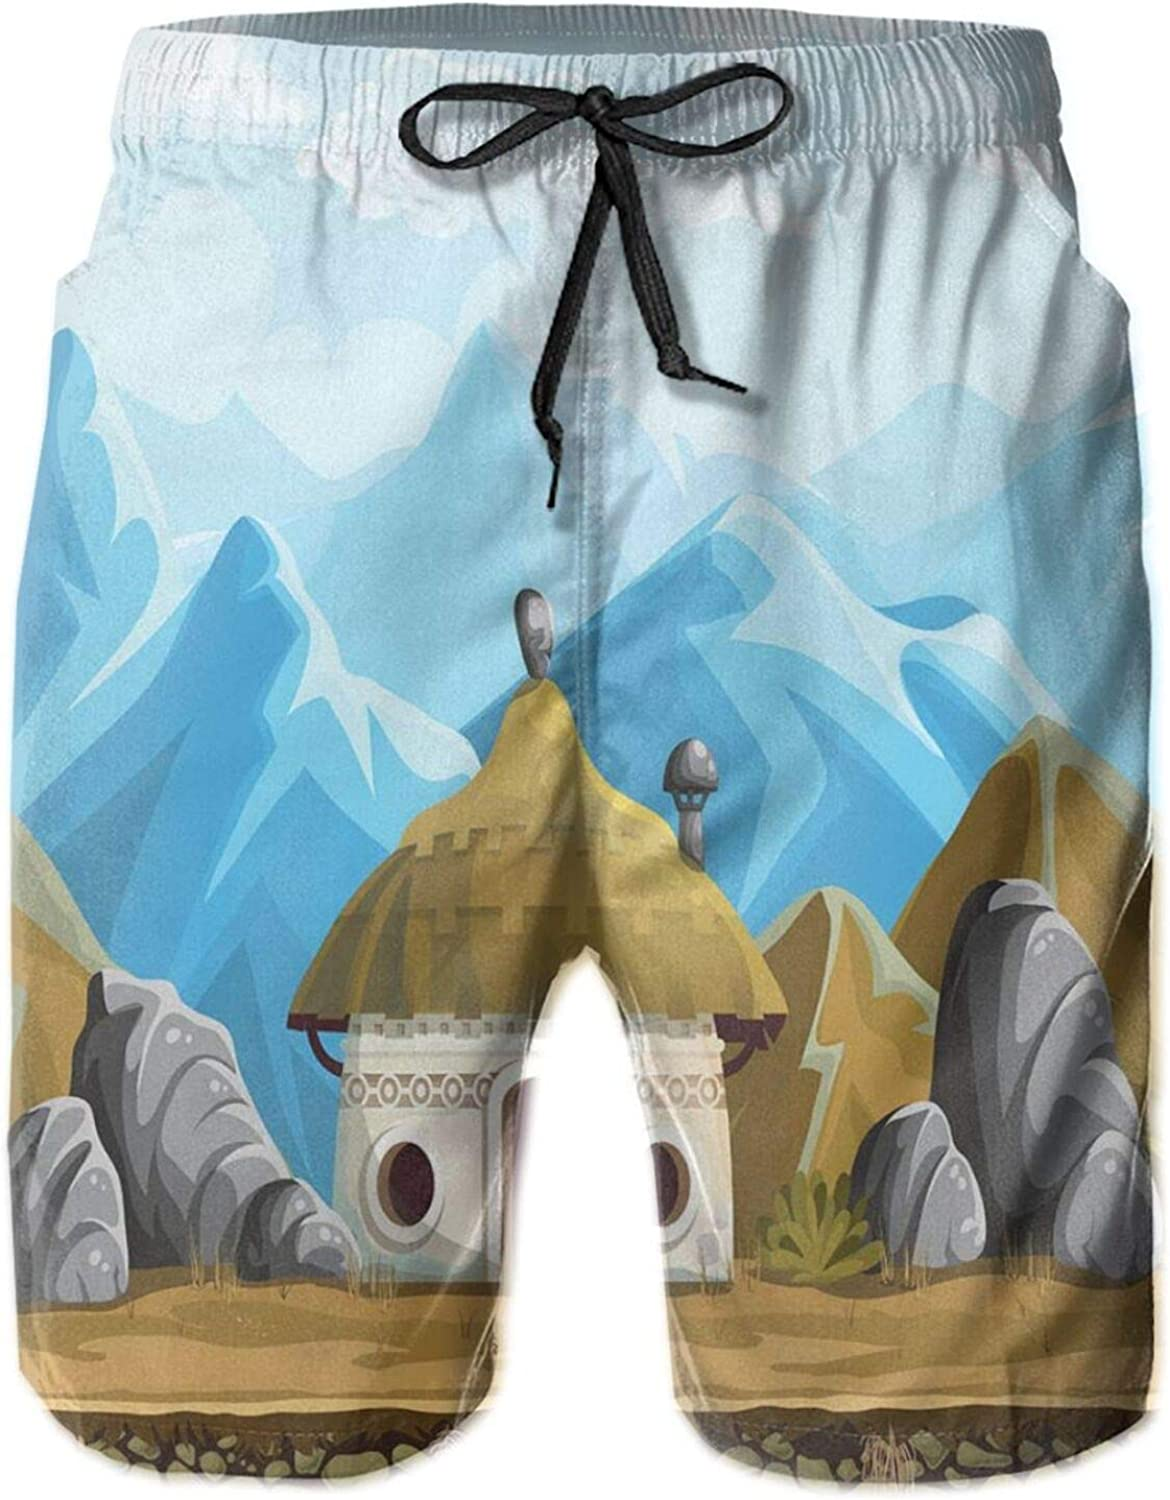 Hut in The Mountains Asian Steppe Architecture with Cartoon Pattern Mens Swim Shorts Casual Workout Short Pants Drawstring Beach Shorts,XXL